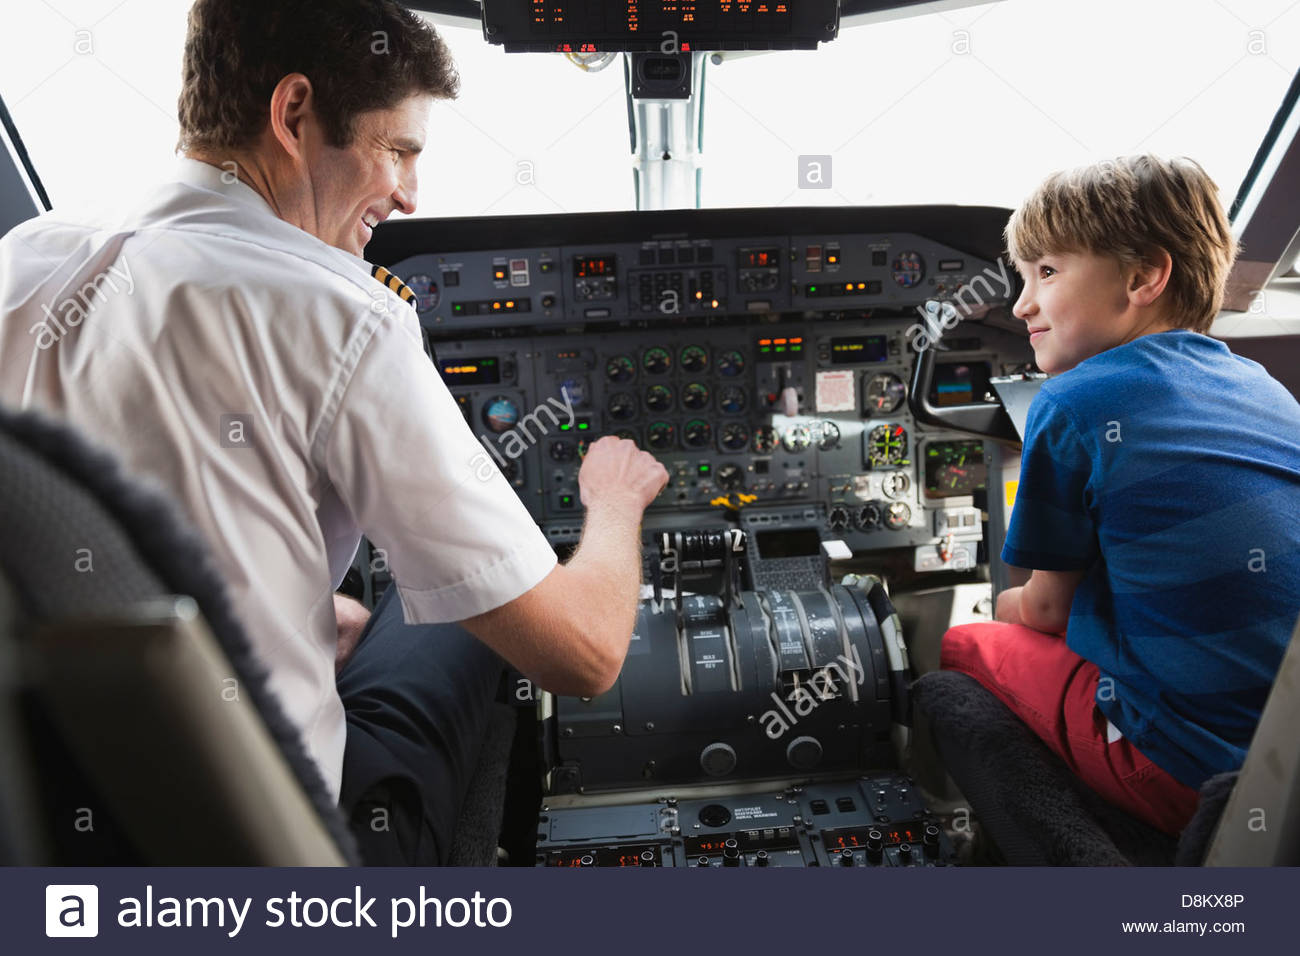 Boy sitting with pilot in airplane cockpit - Stock Image